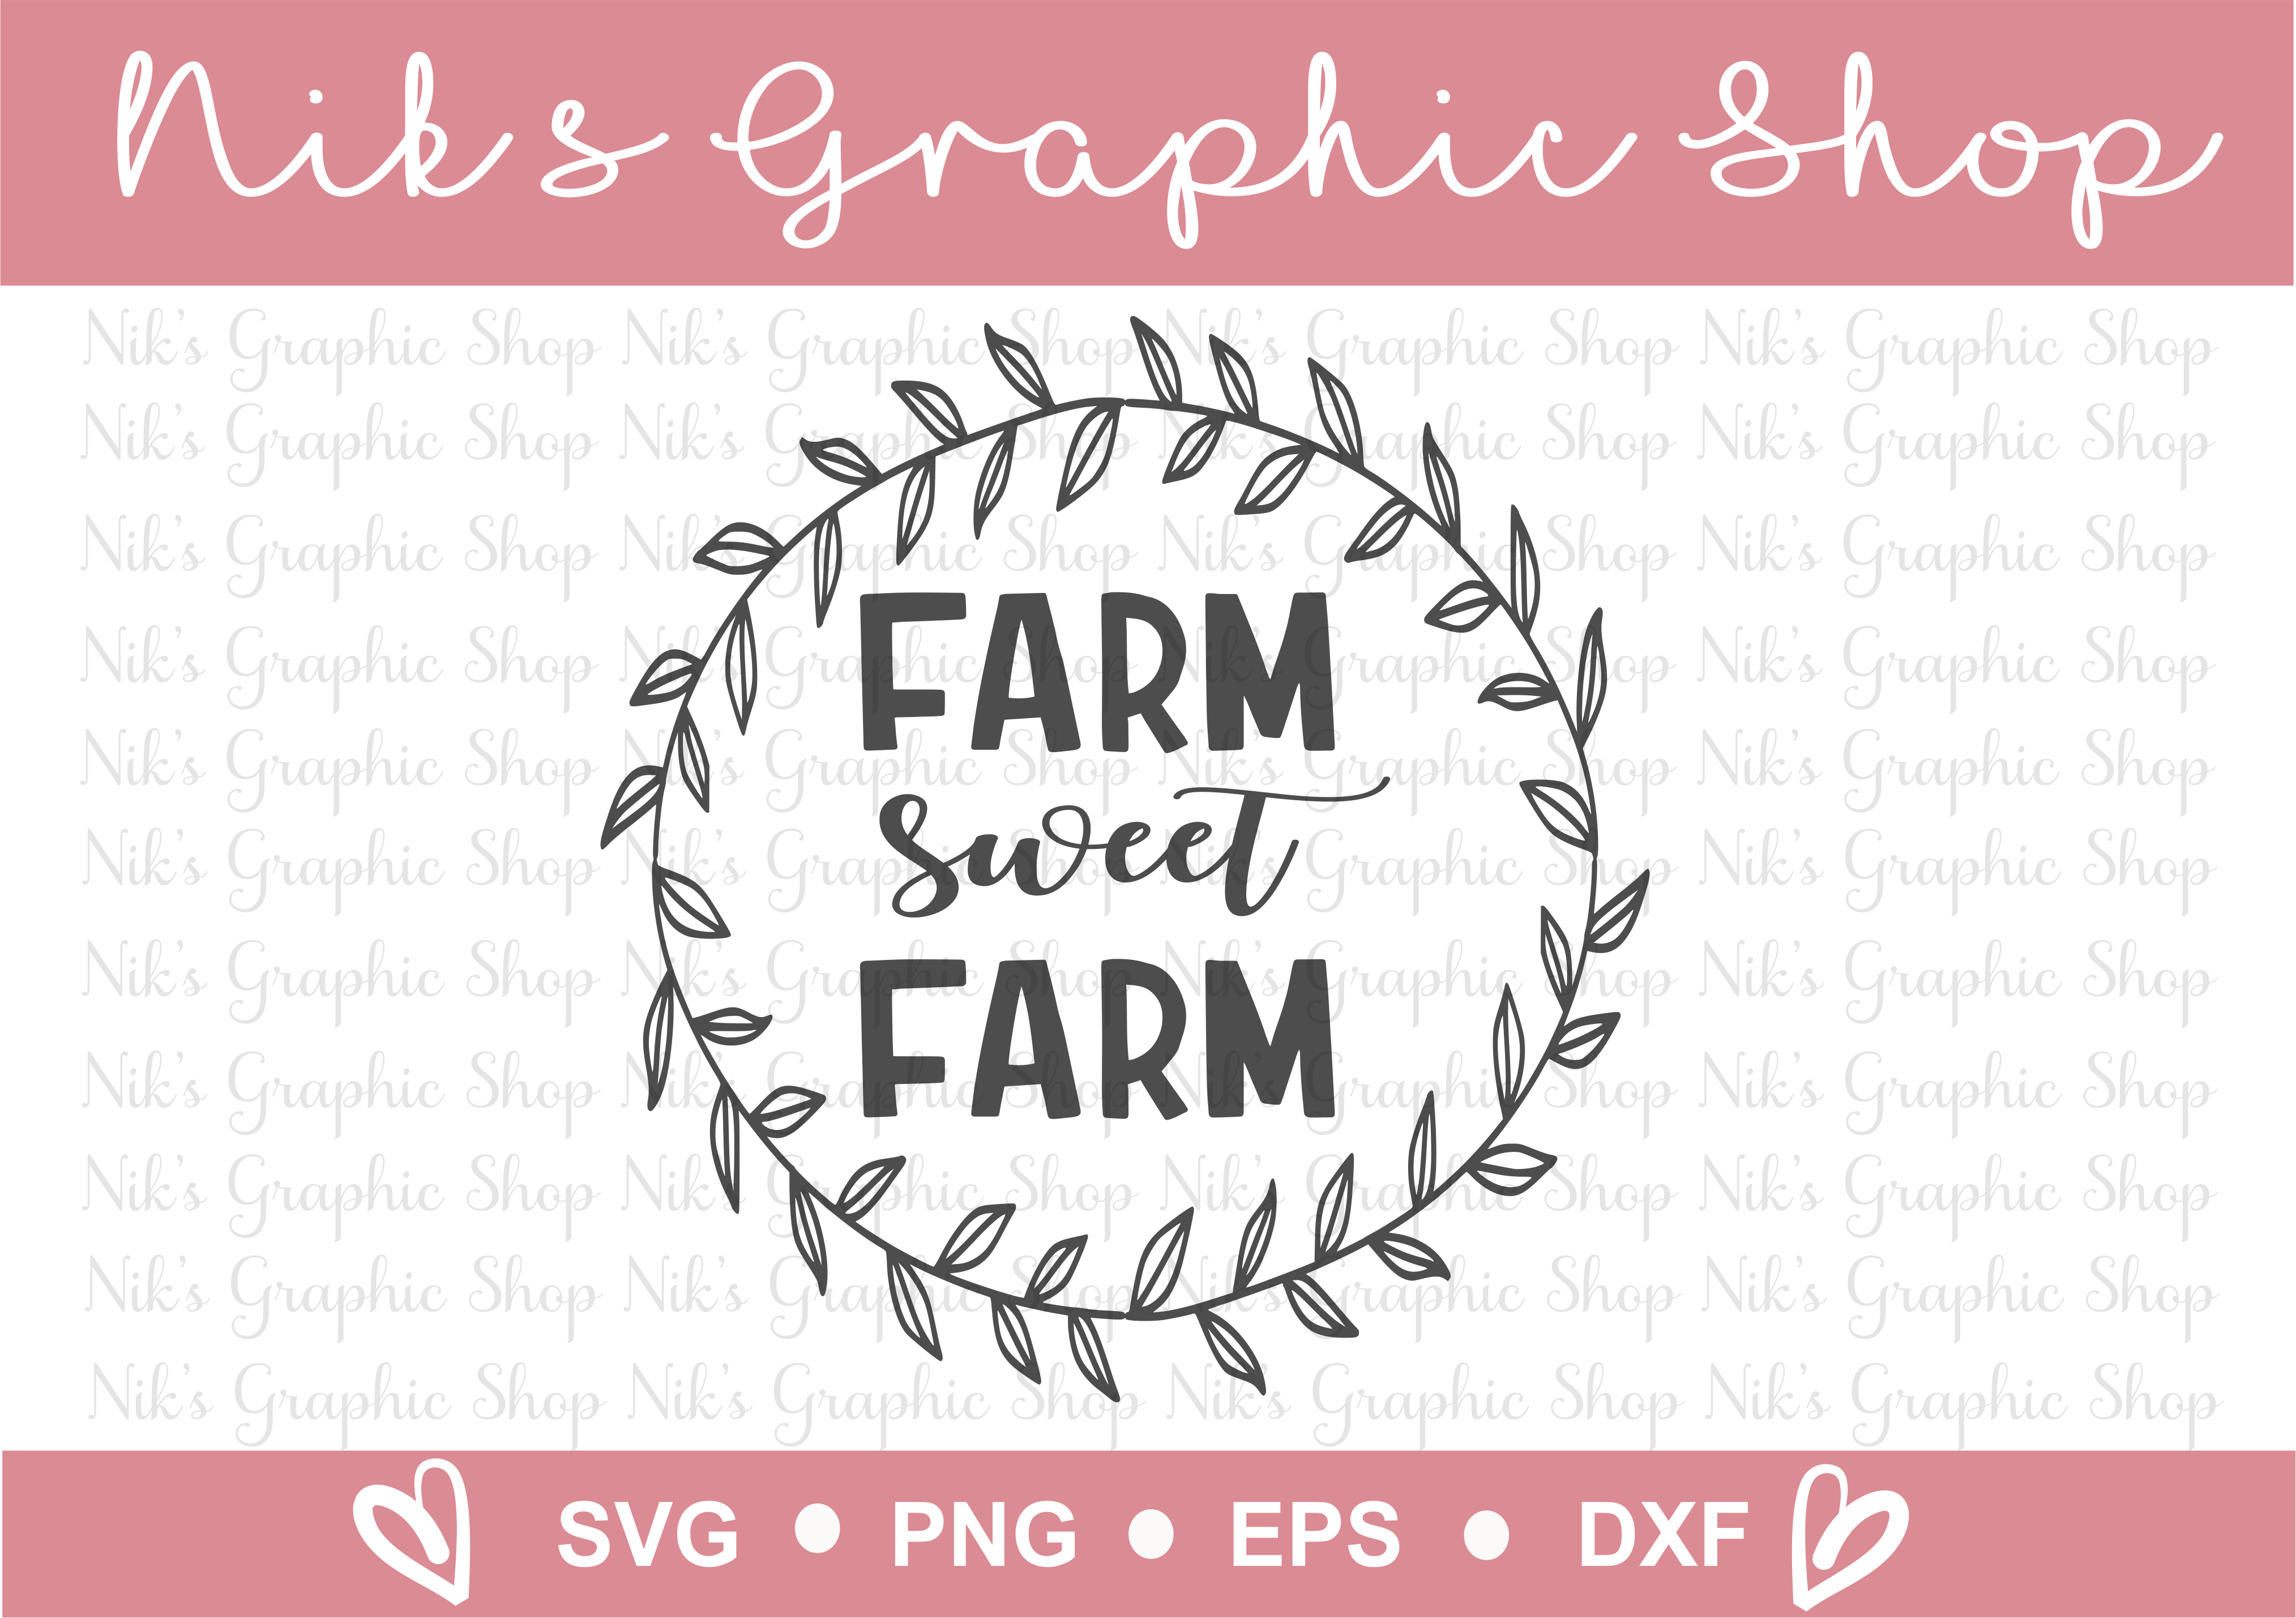 Farm Svgs, Farmers Svgs, Farmers Daughter Svg, Farm sweet example image 7